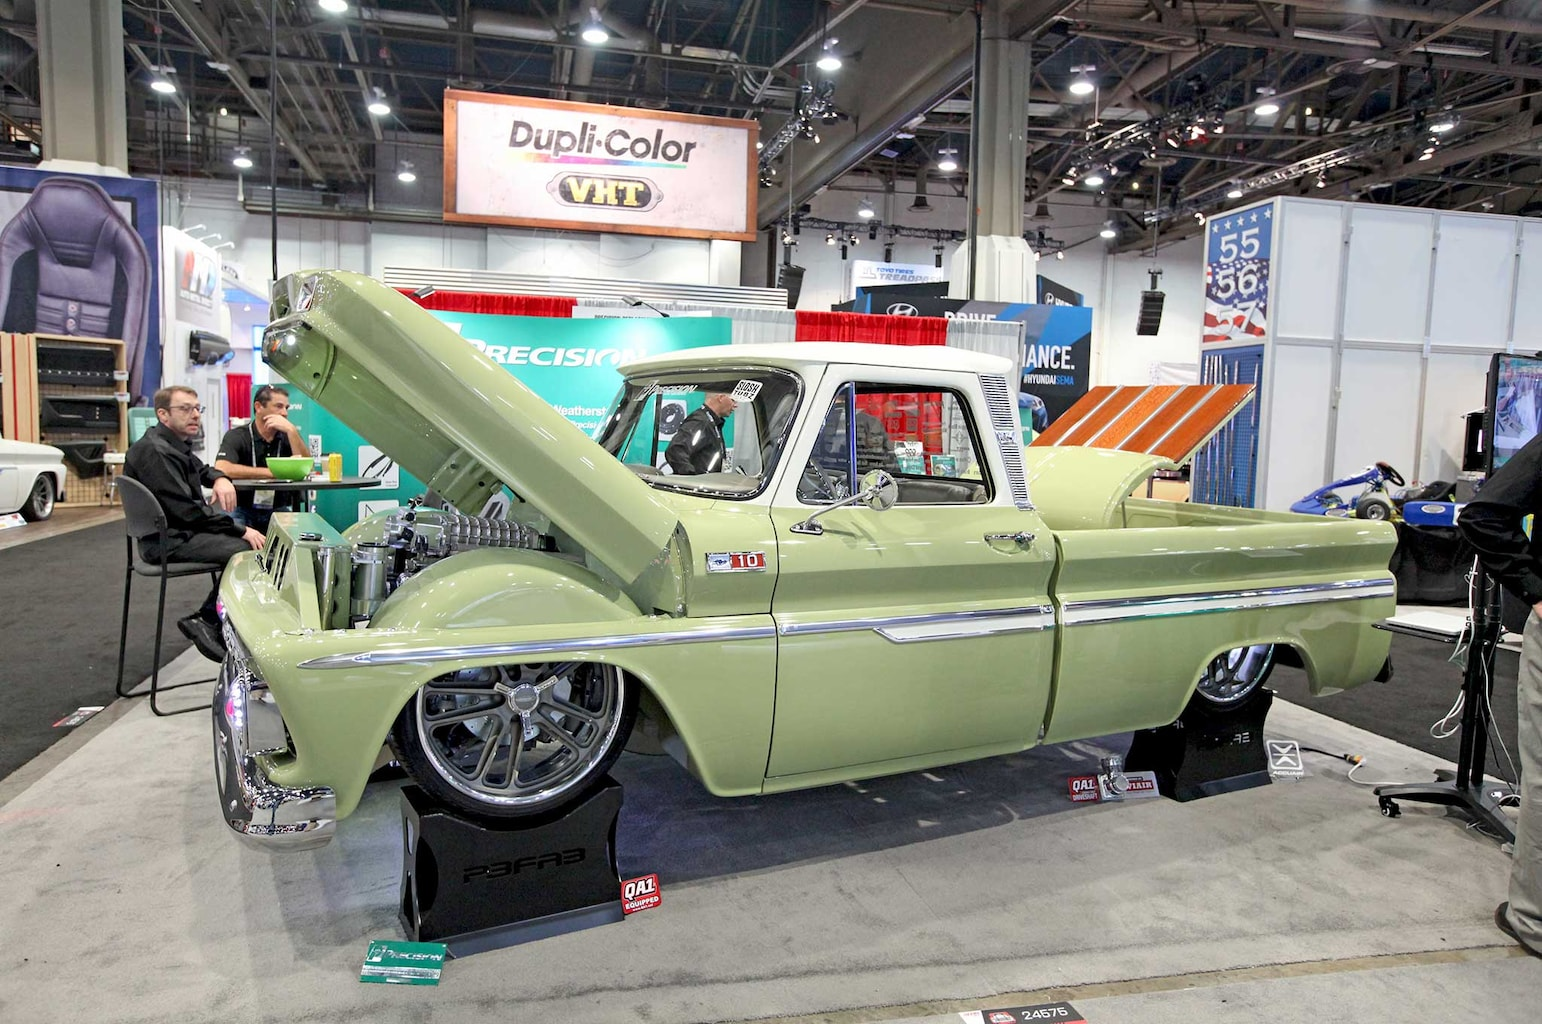 015 favorite 5 at sema 2015 mike slosh 1965 chevy c10